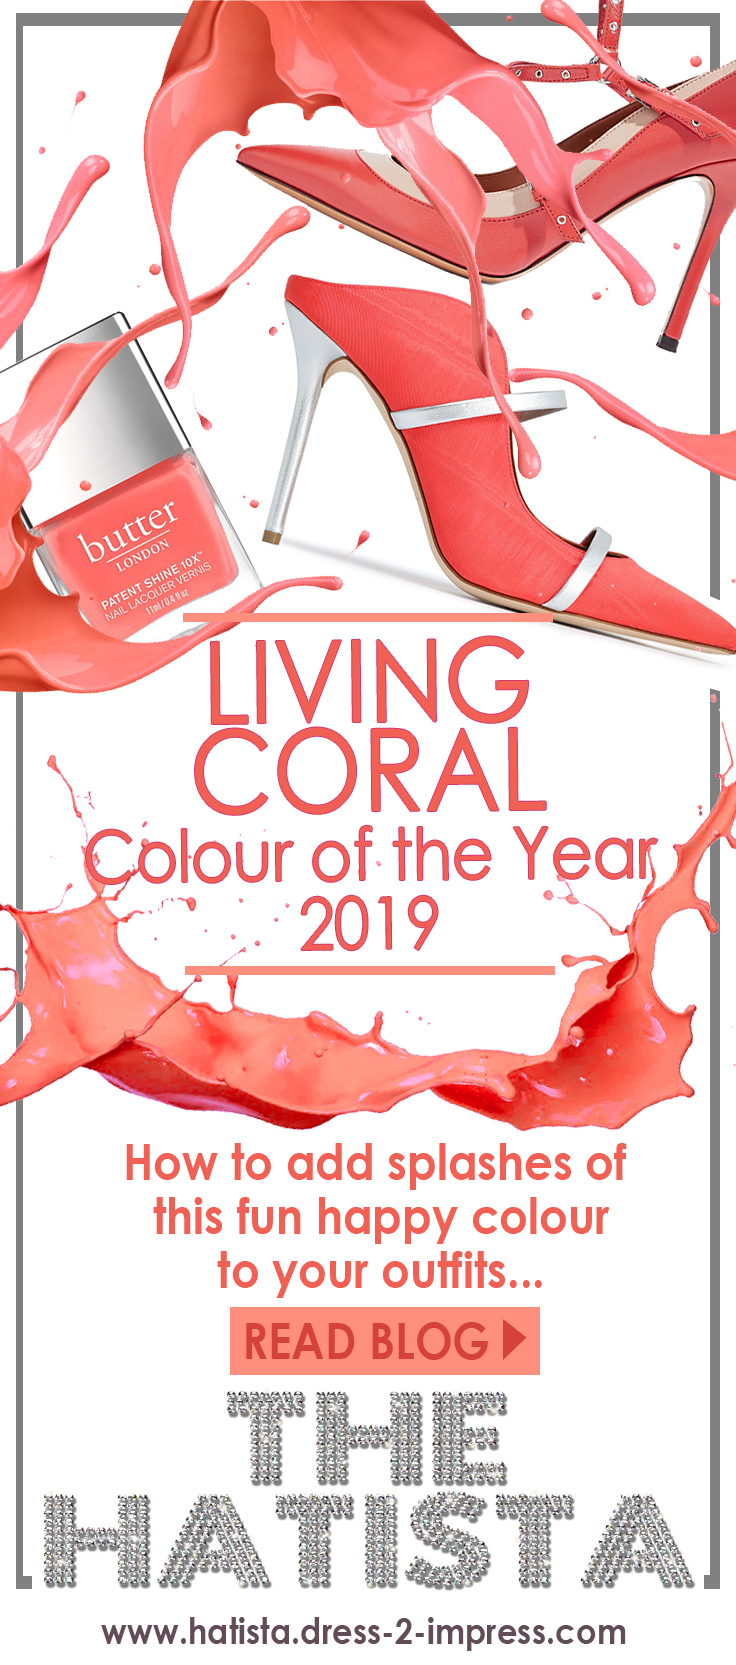 What to wear with Coral. Coral Outfit ideas. How to wear the colour Coral. Pantone Colour of the Year 2019 Living Coral. Coral outfit inspiration 2020. What to wear with a Coral Dress